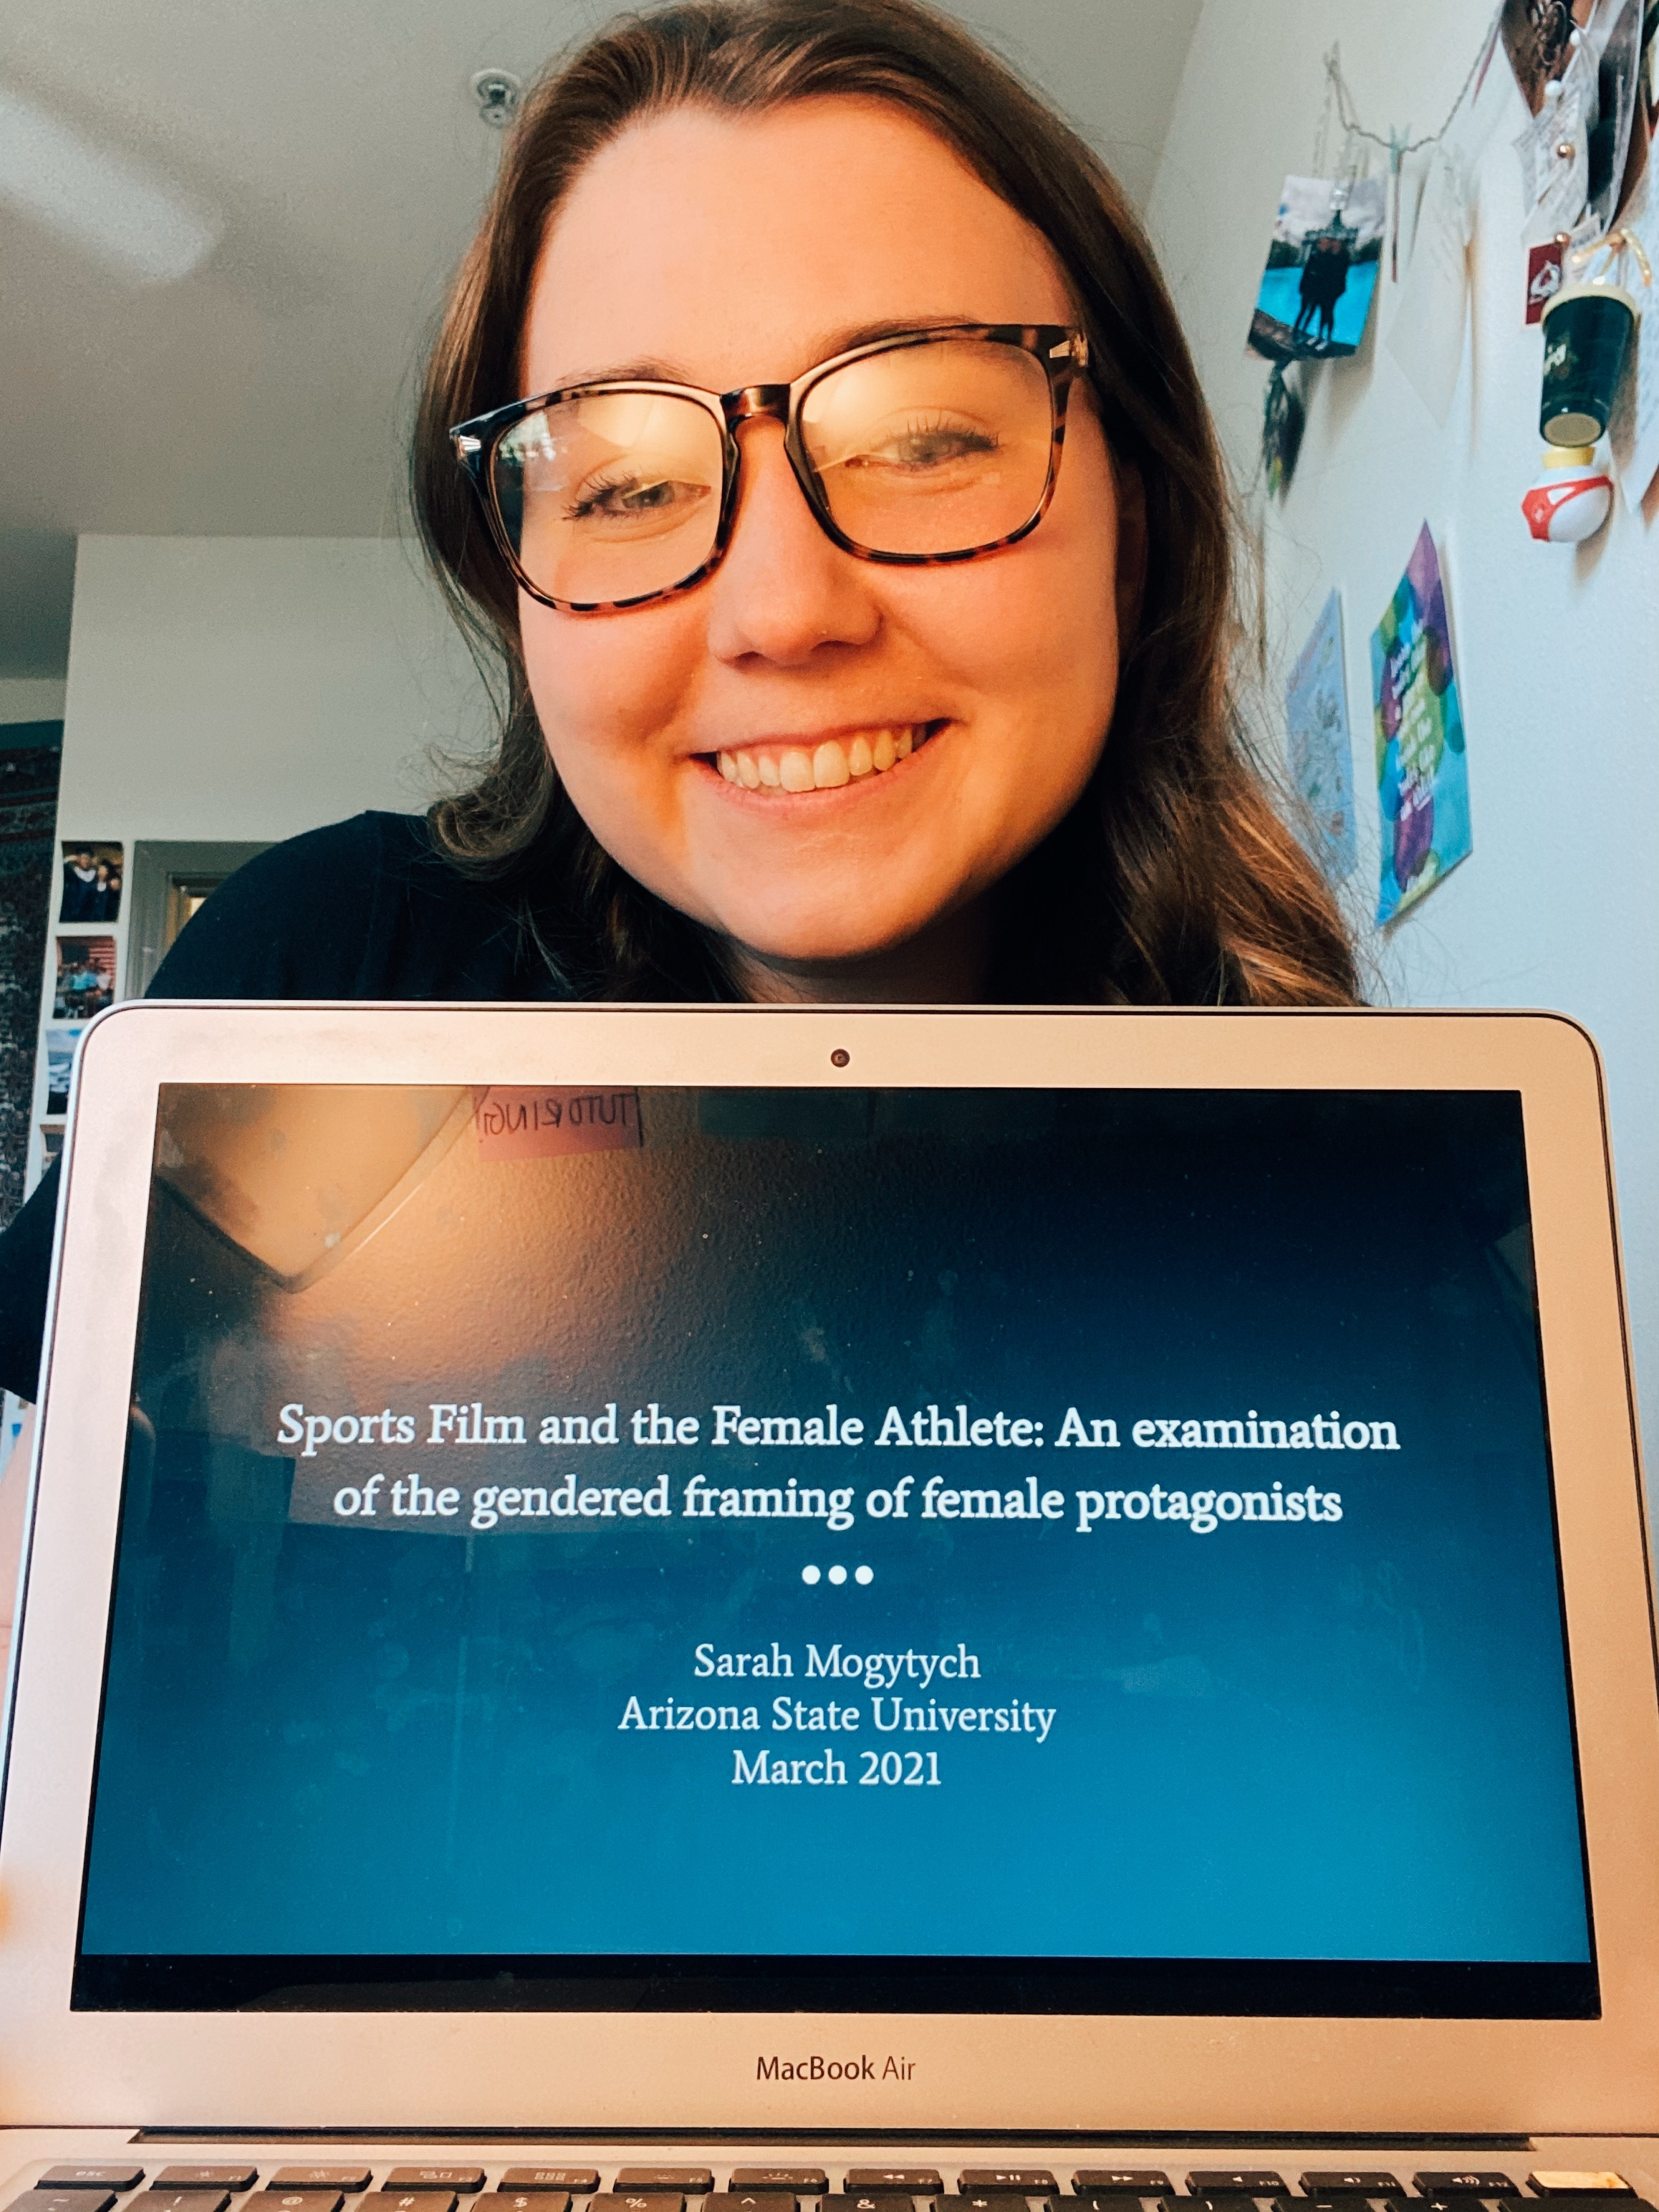 Sarah Moygtych and her honors thesis presentation